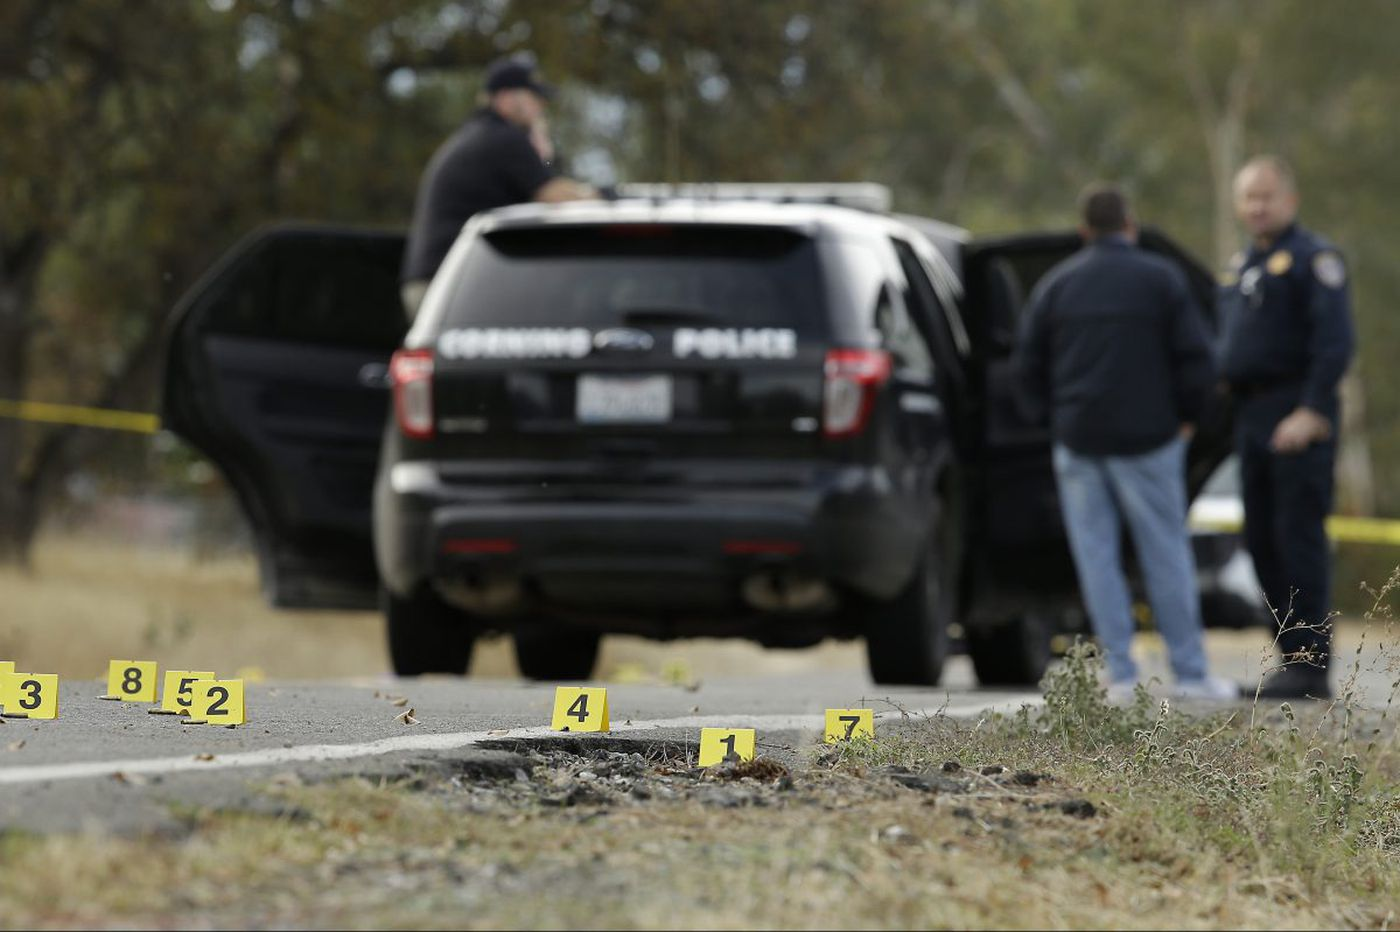 California gunman killed wife before rampaging through community, police say